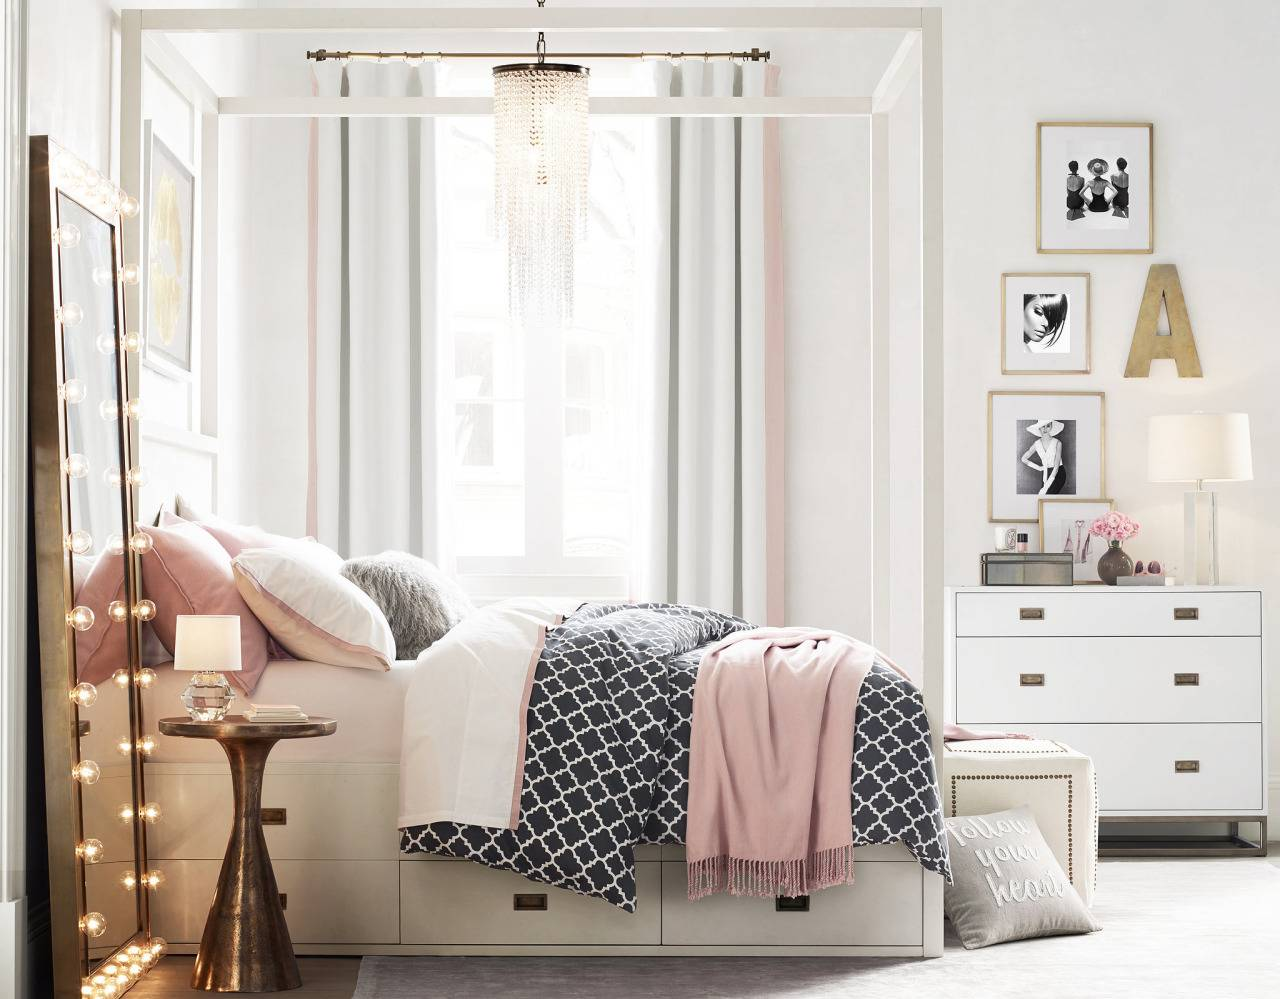 How To Make Your Bedroom Feel Cozy Sprinkles Of Style